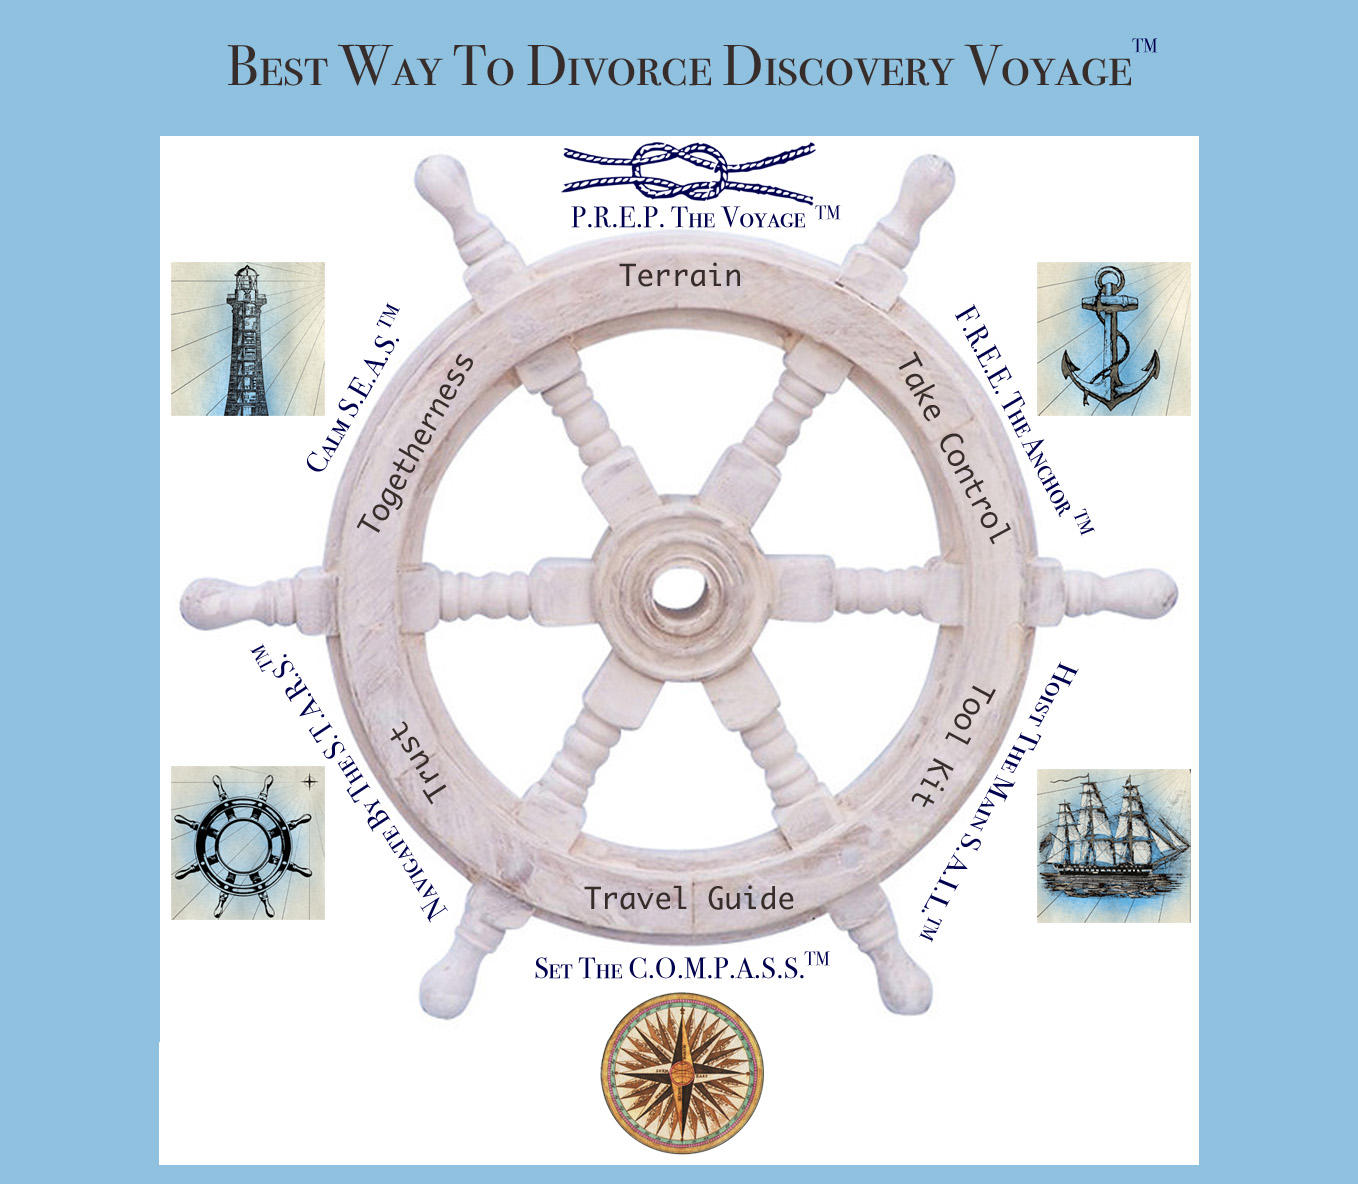 Best Way To Divorce Discovery Voyage